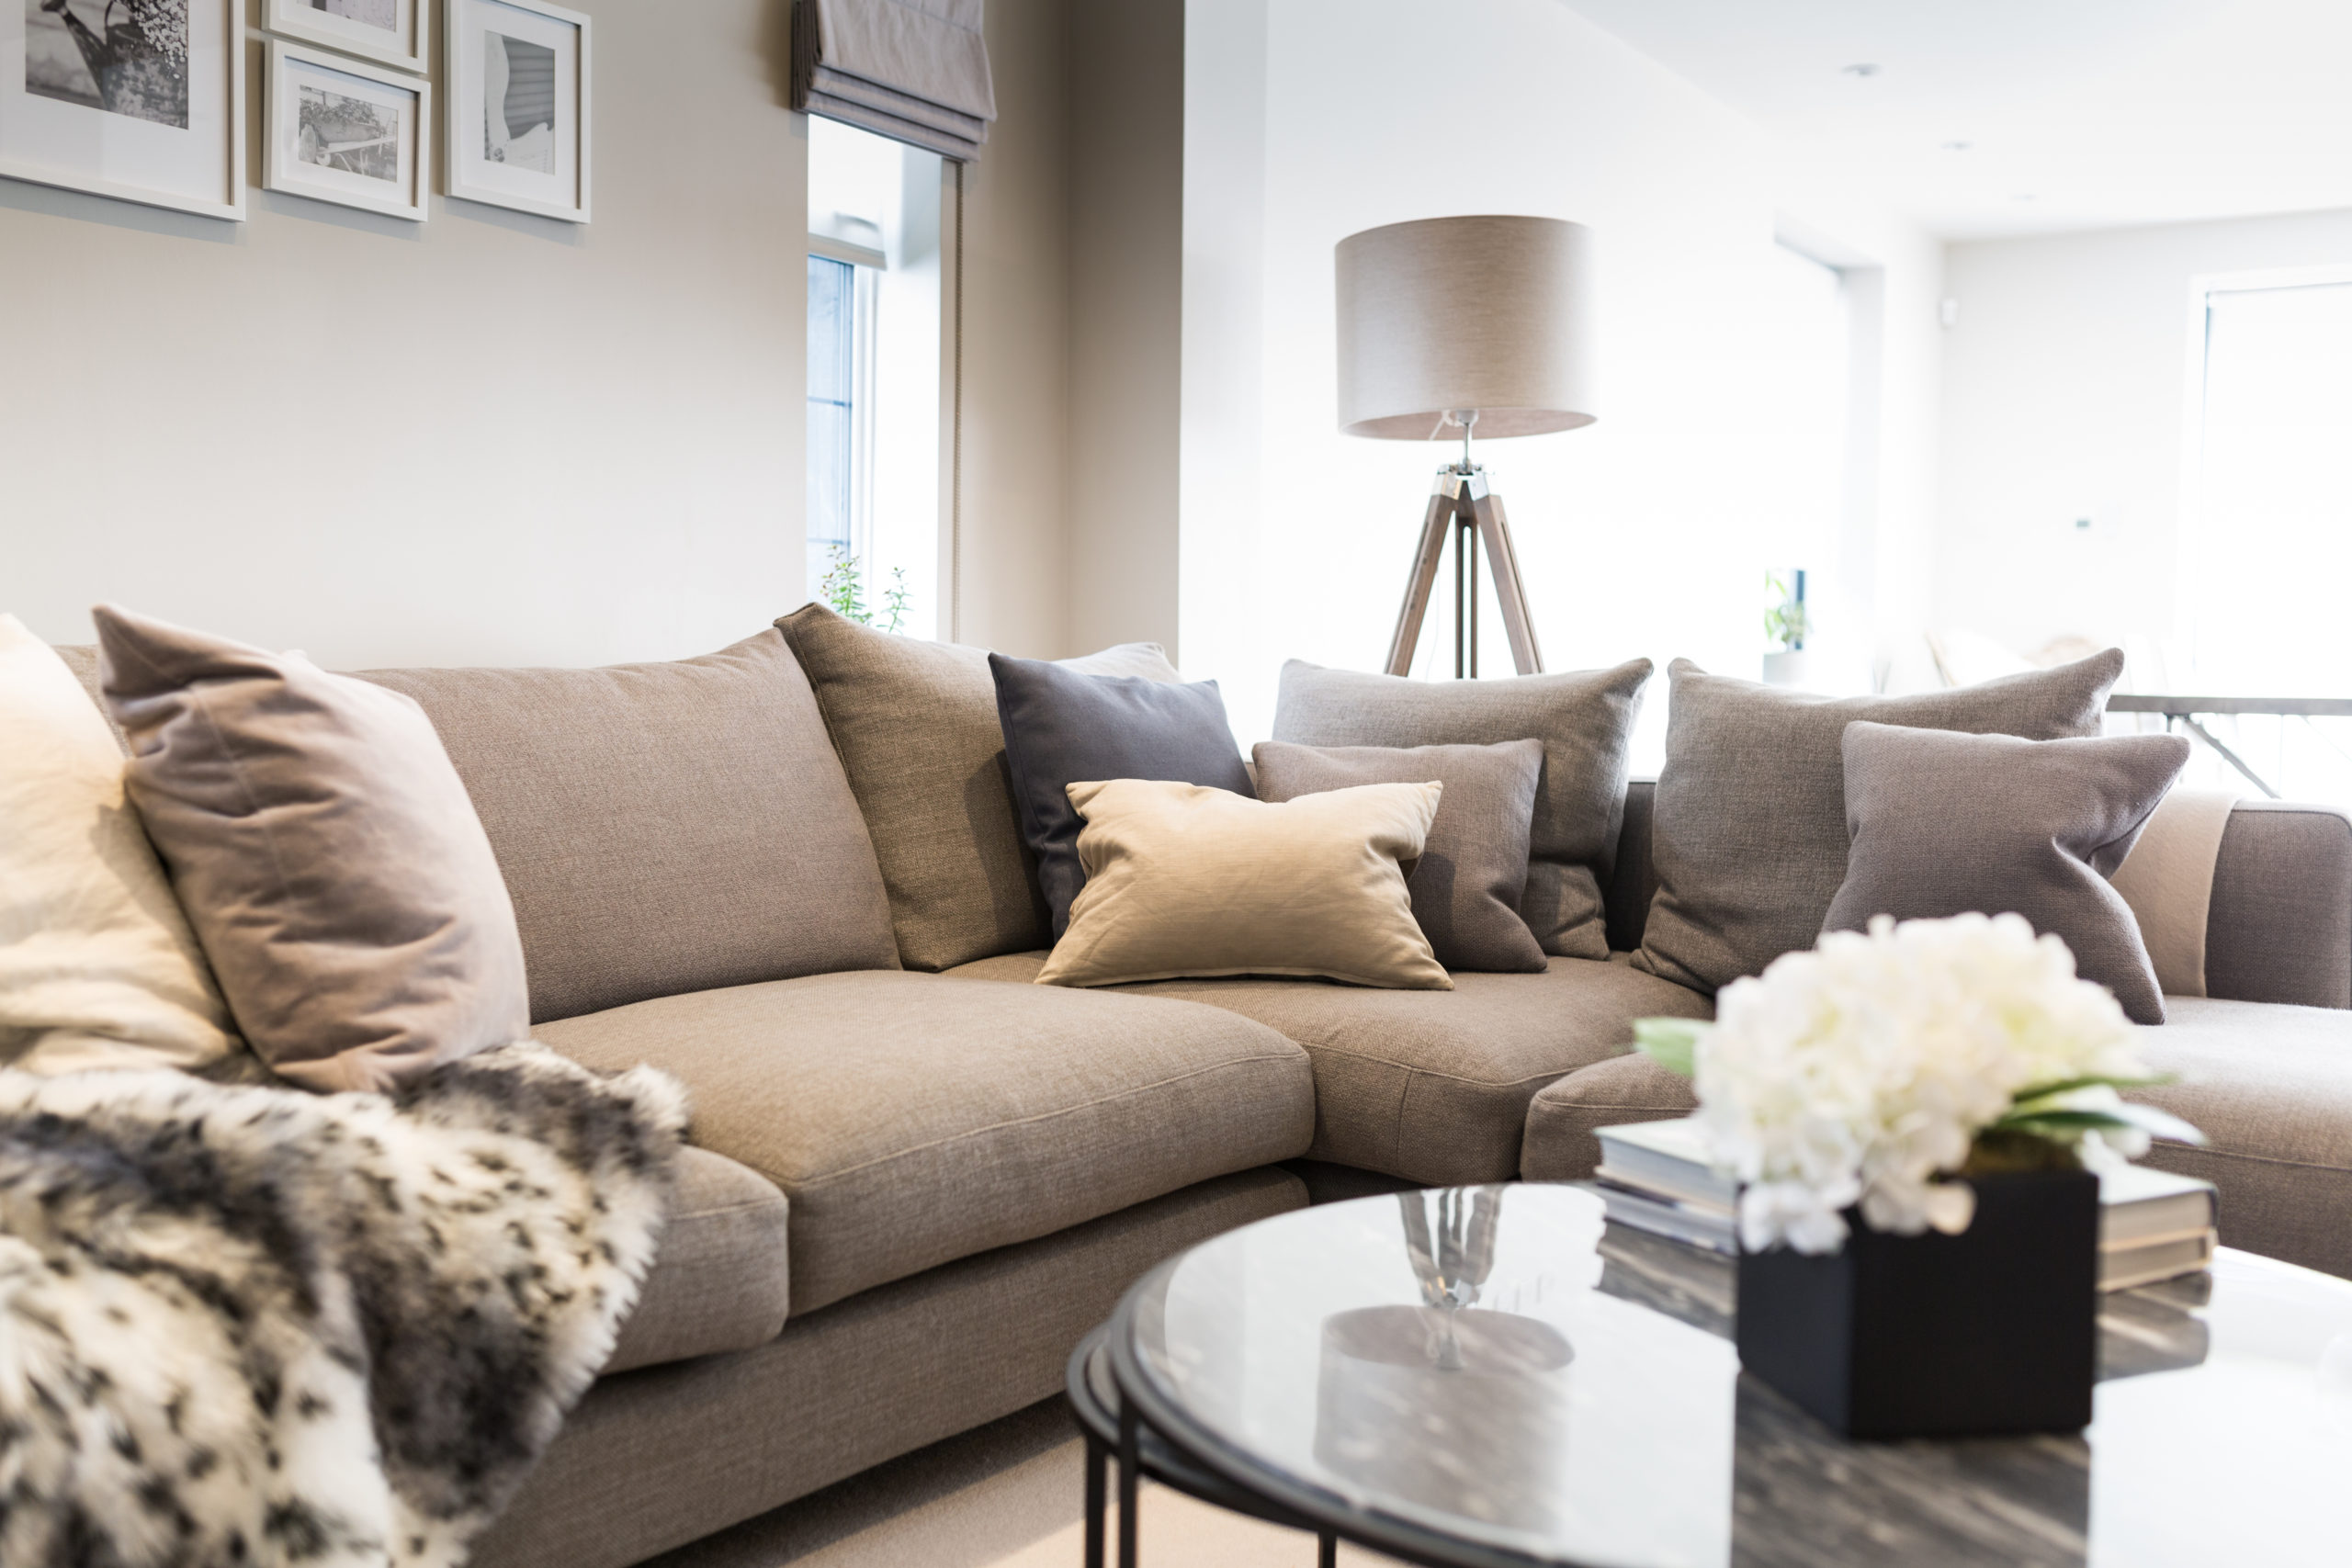 sofa and lounge area of open plan living space at interiors photoshoot for London/Kent designer IG interiors